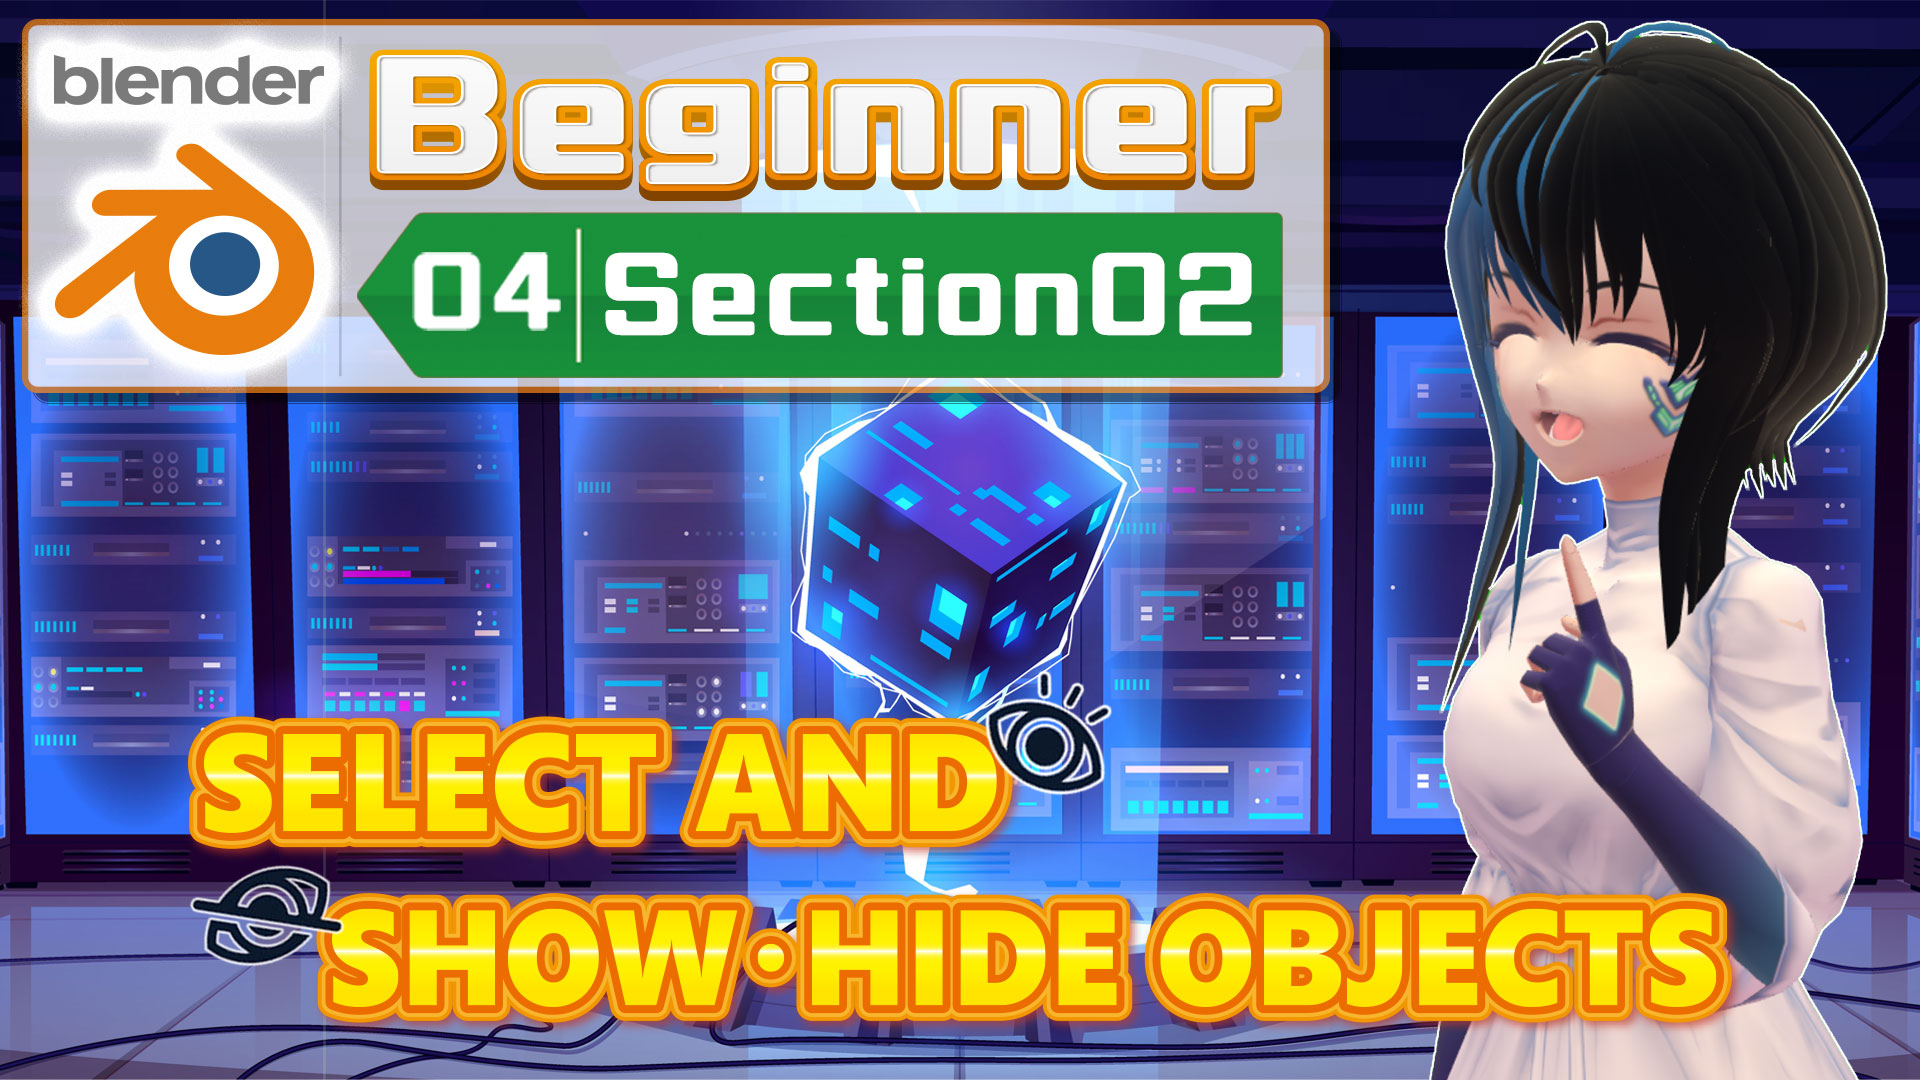 SELECT AND SHOW / HIDE OBJECTS